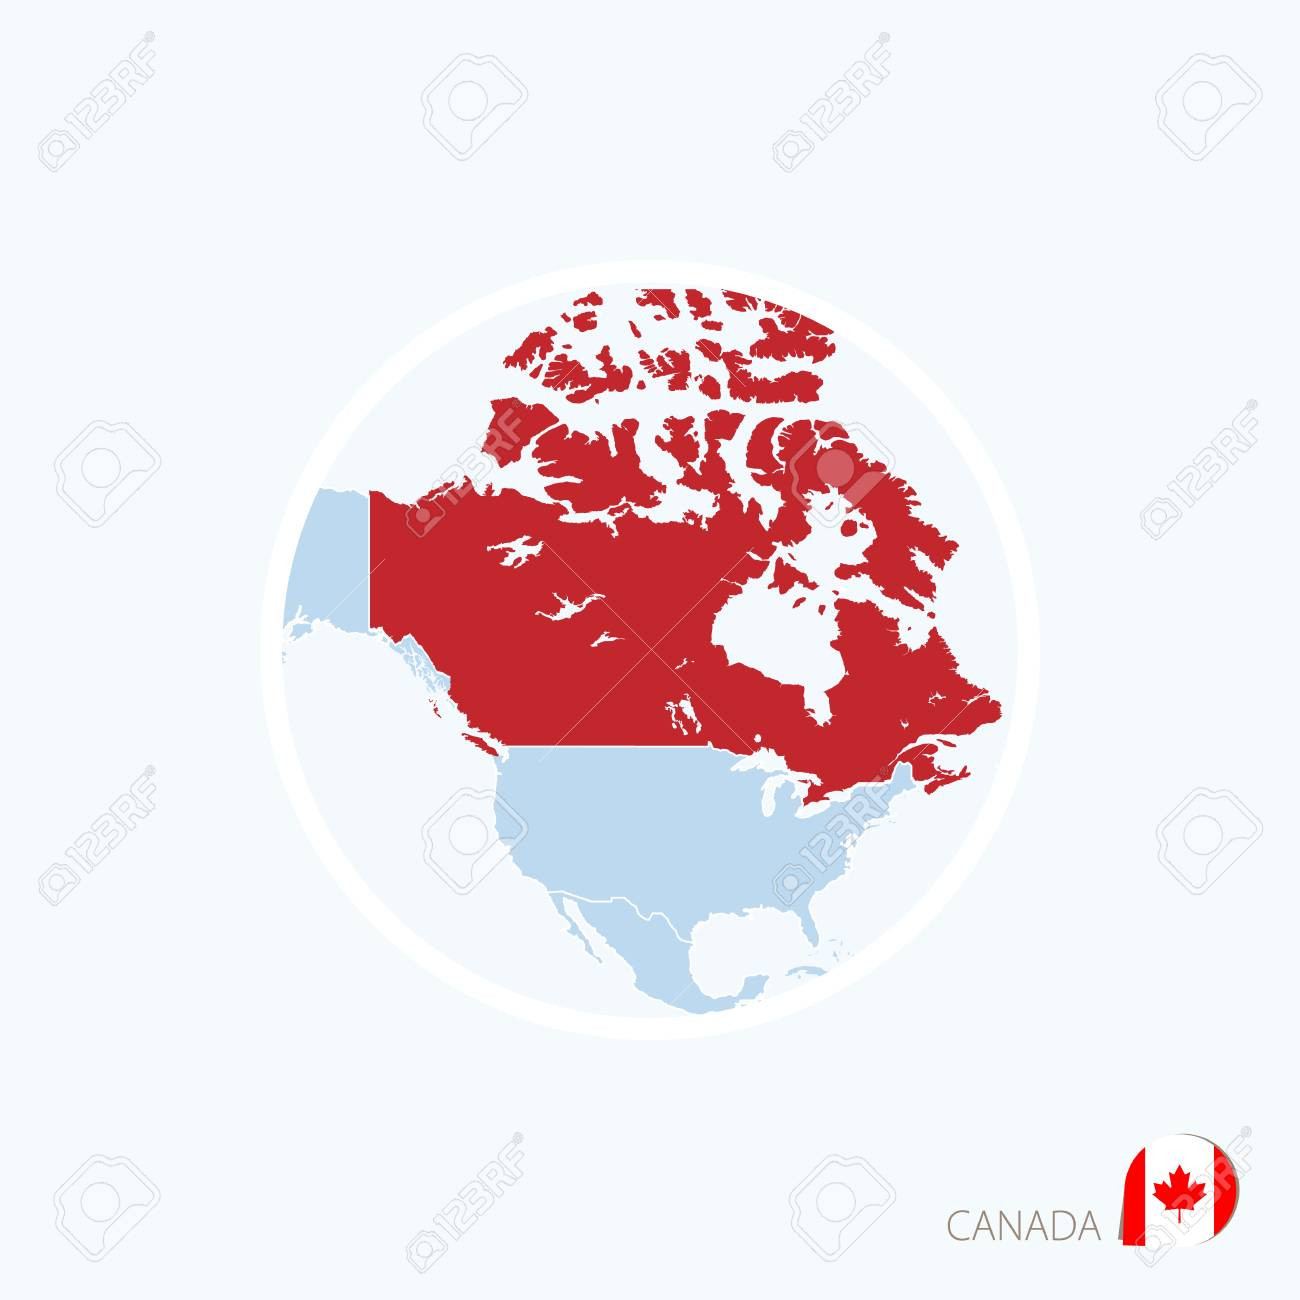 Map icon of canada blue map of north america with highlighted map icon of canada blue map of north america with highlighted canada in red color gumiabroncs Image collections